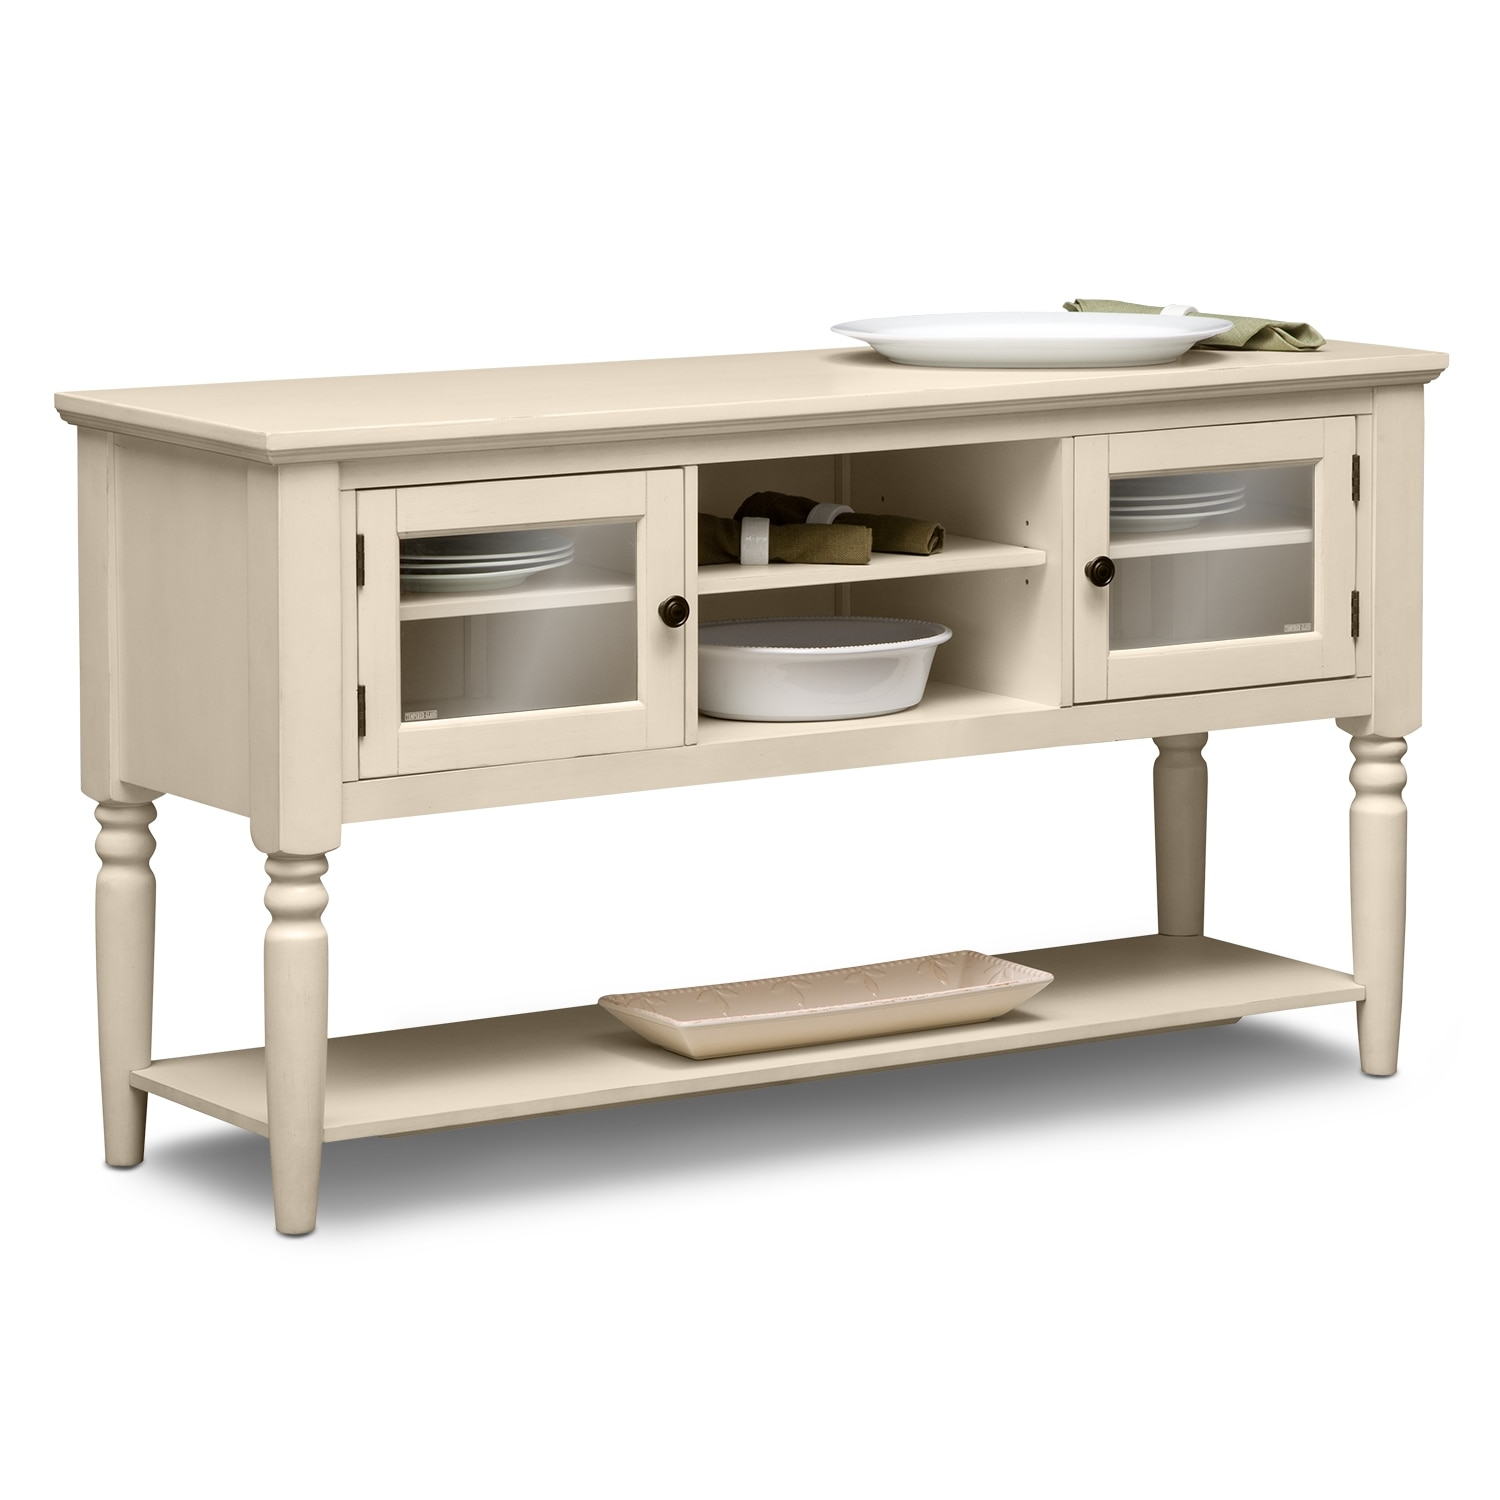 Thompson cream server - Dining room server furniture ...